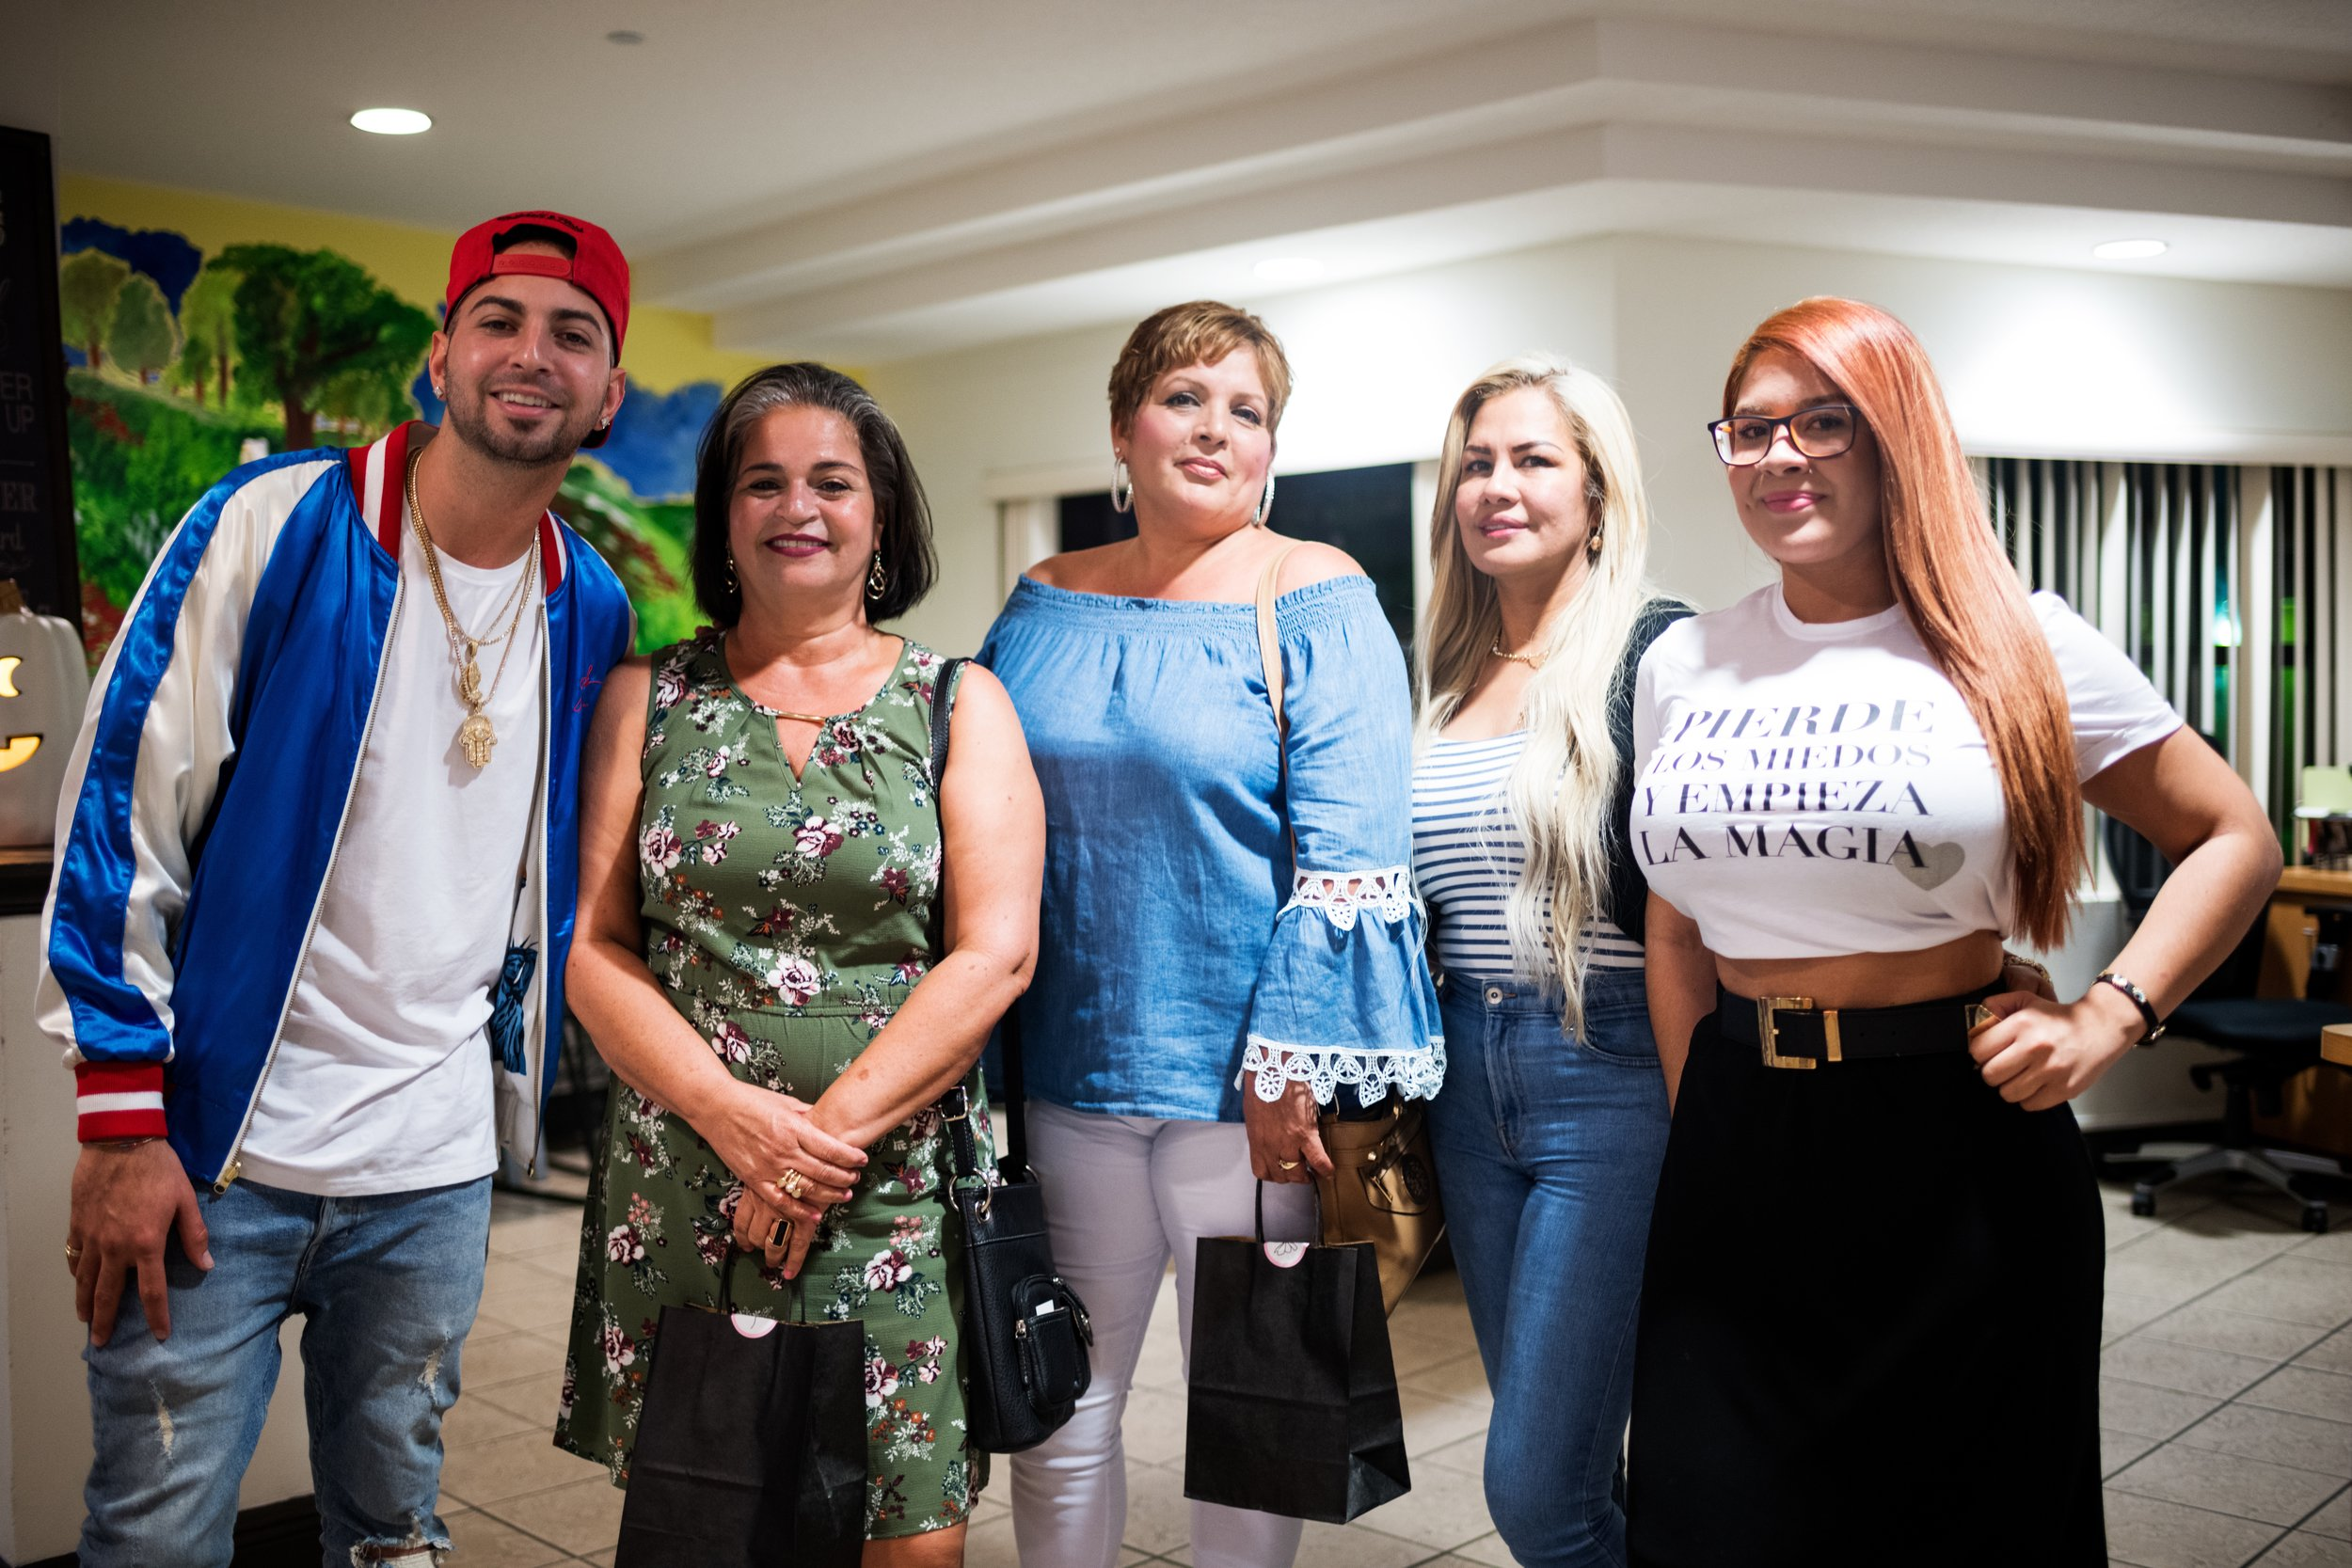 #SurvivorsSpeak with JQuiles and his mother and the women at The Lodge